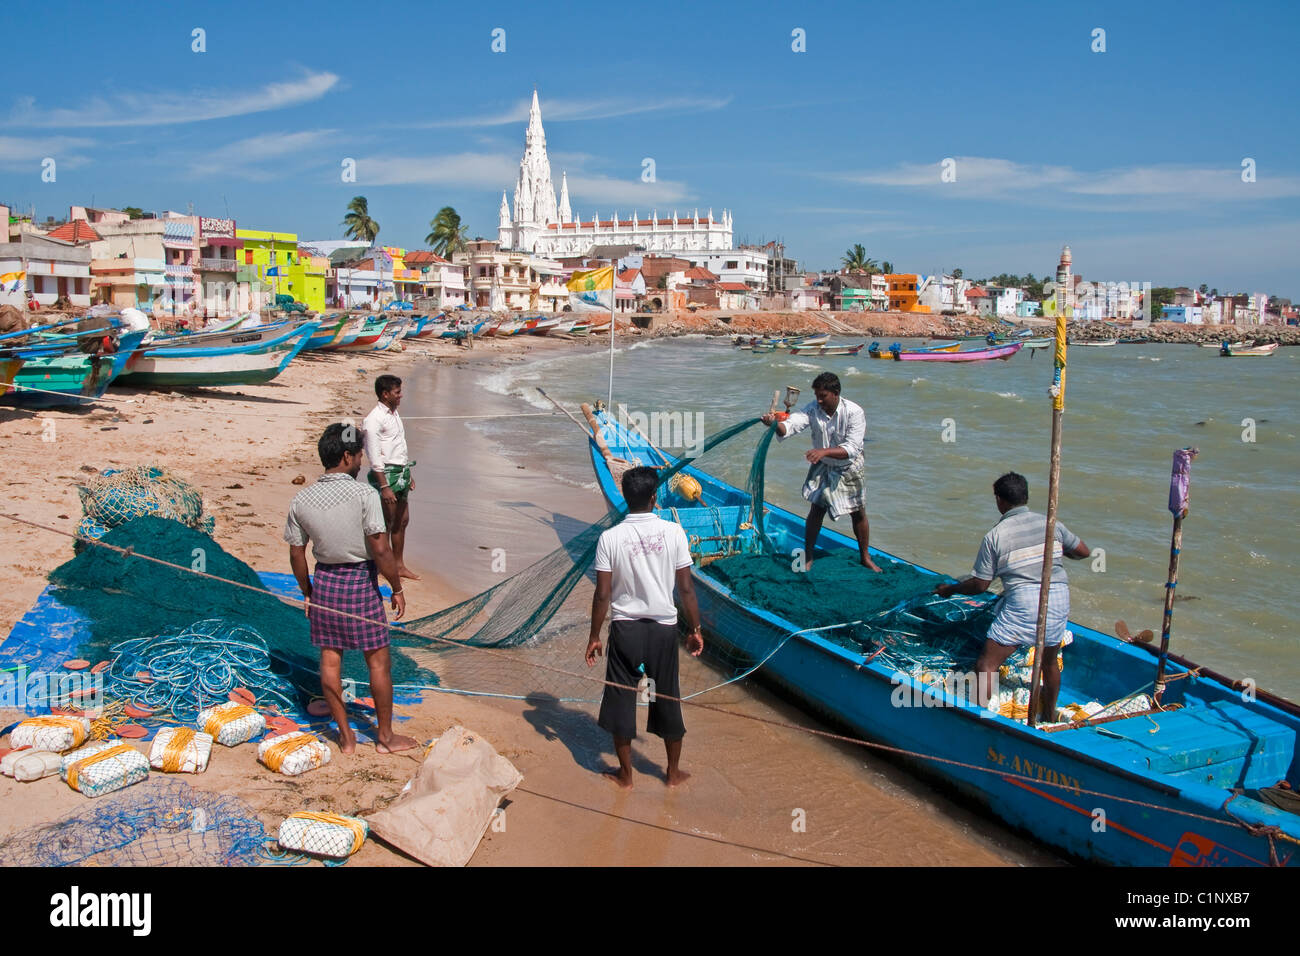 Fishermen on Kanyakumari Beach waterfront preparing nets with Our Lady of Ransom Church in background. - Stock Image